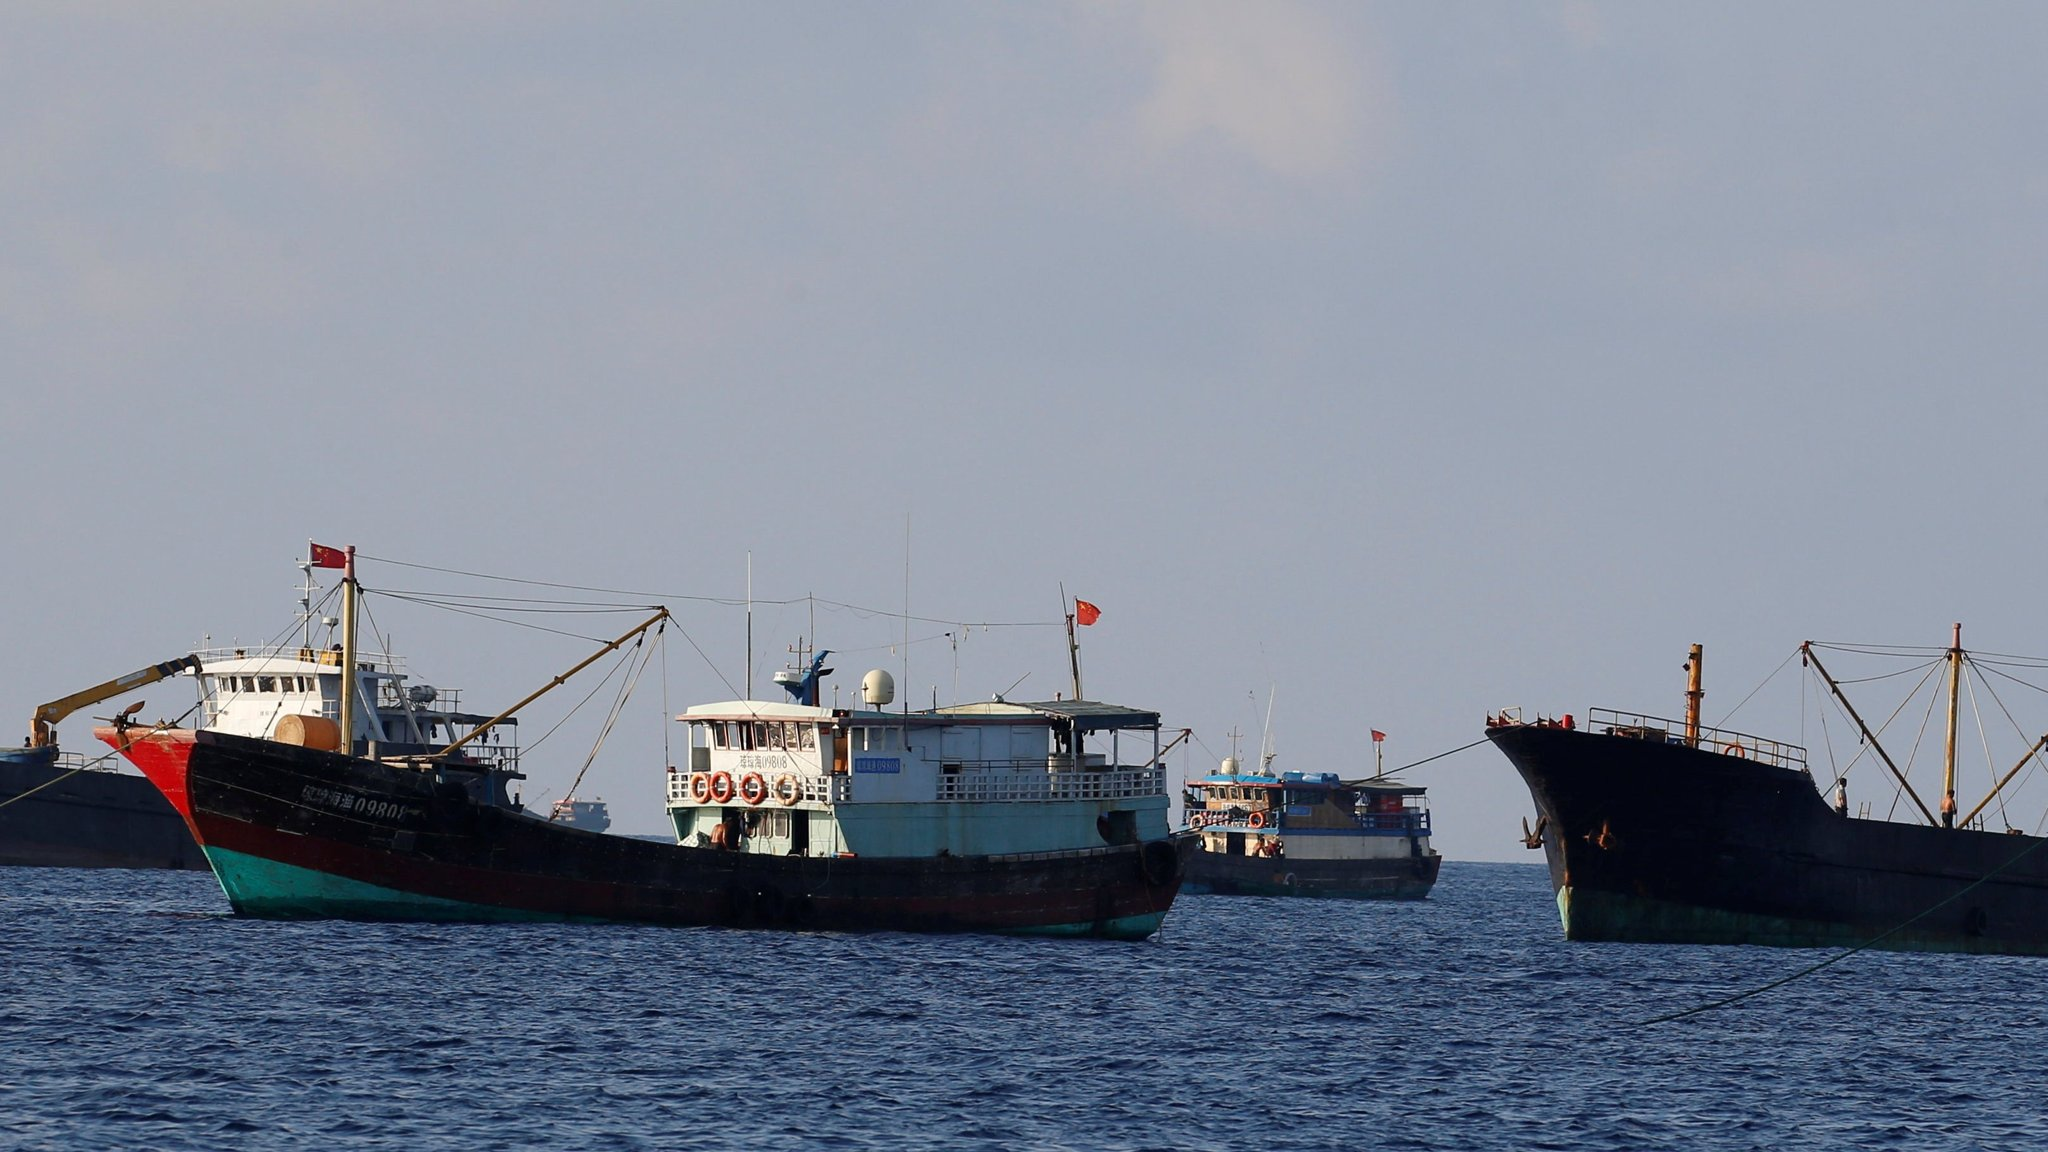 China's long-distance fishing fleet reliant on subsidies